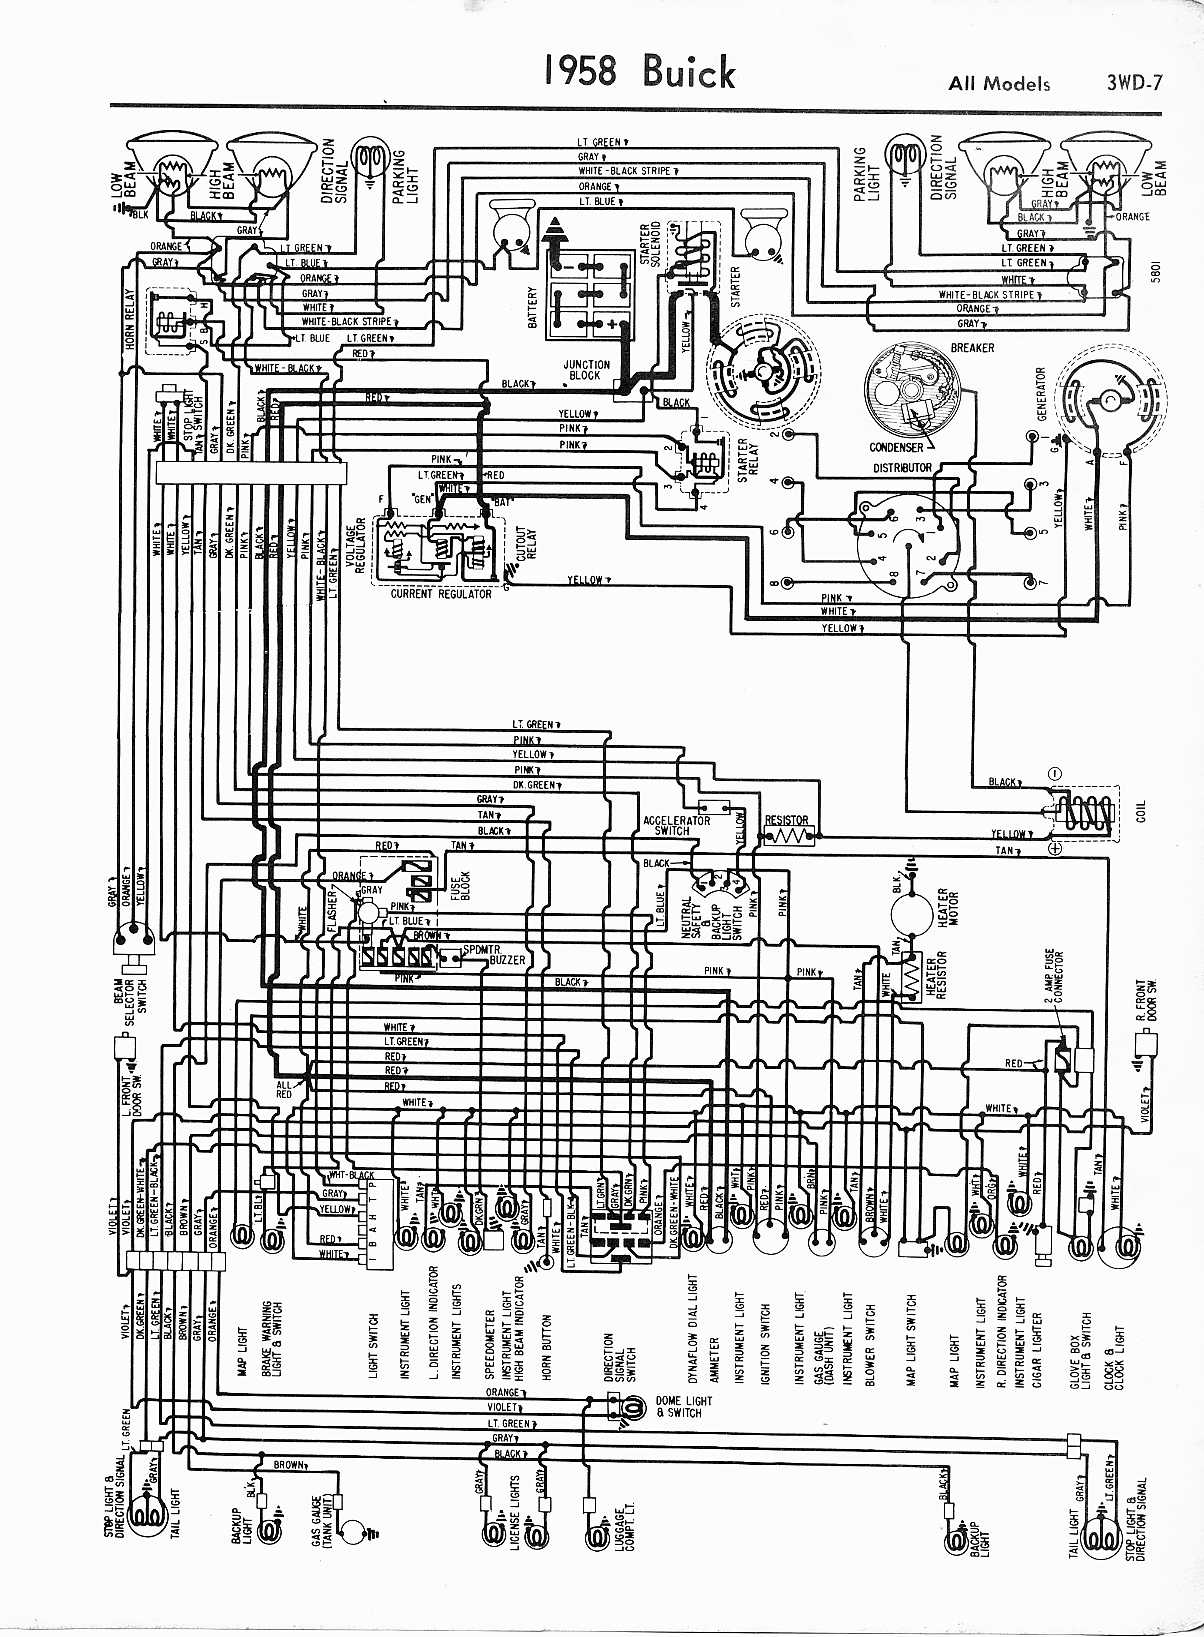 MWireBuic65_3WD 007 buick wiring diagrams 1957 1965 perodua kancil wiring diagram at sewacar.co